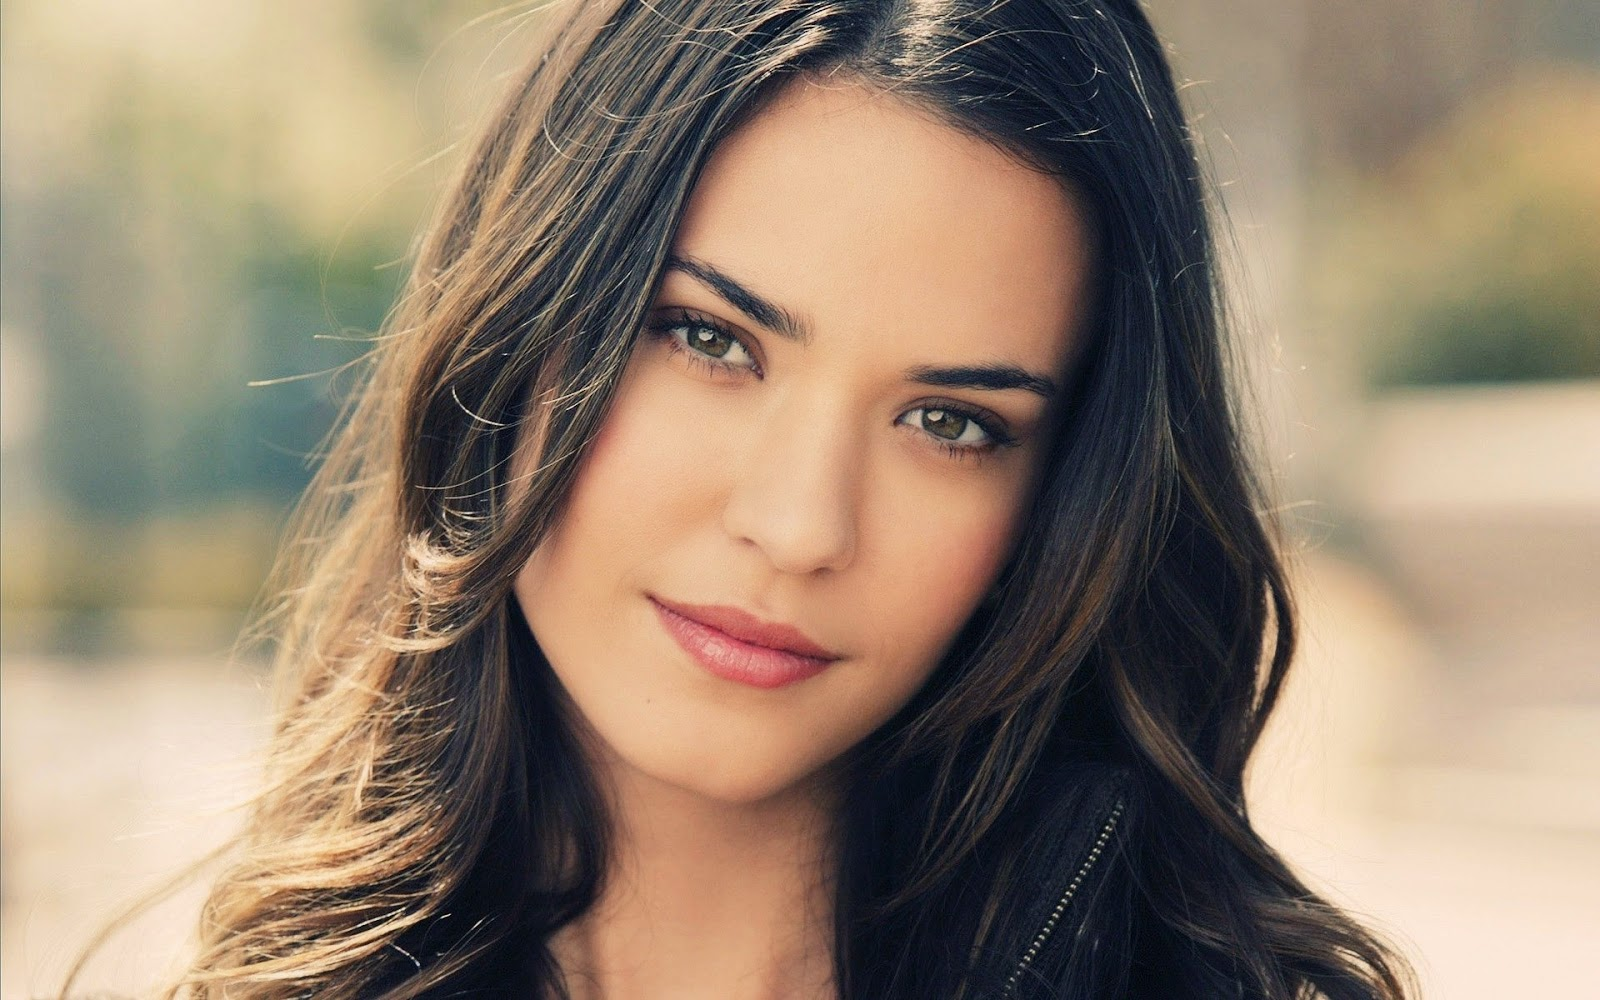 Odette Annable | Odette annable, Celebrity and Actresses